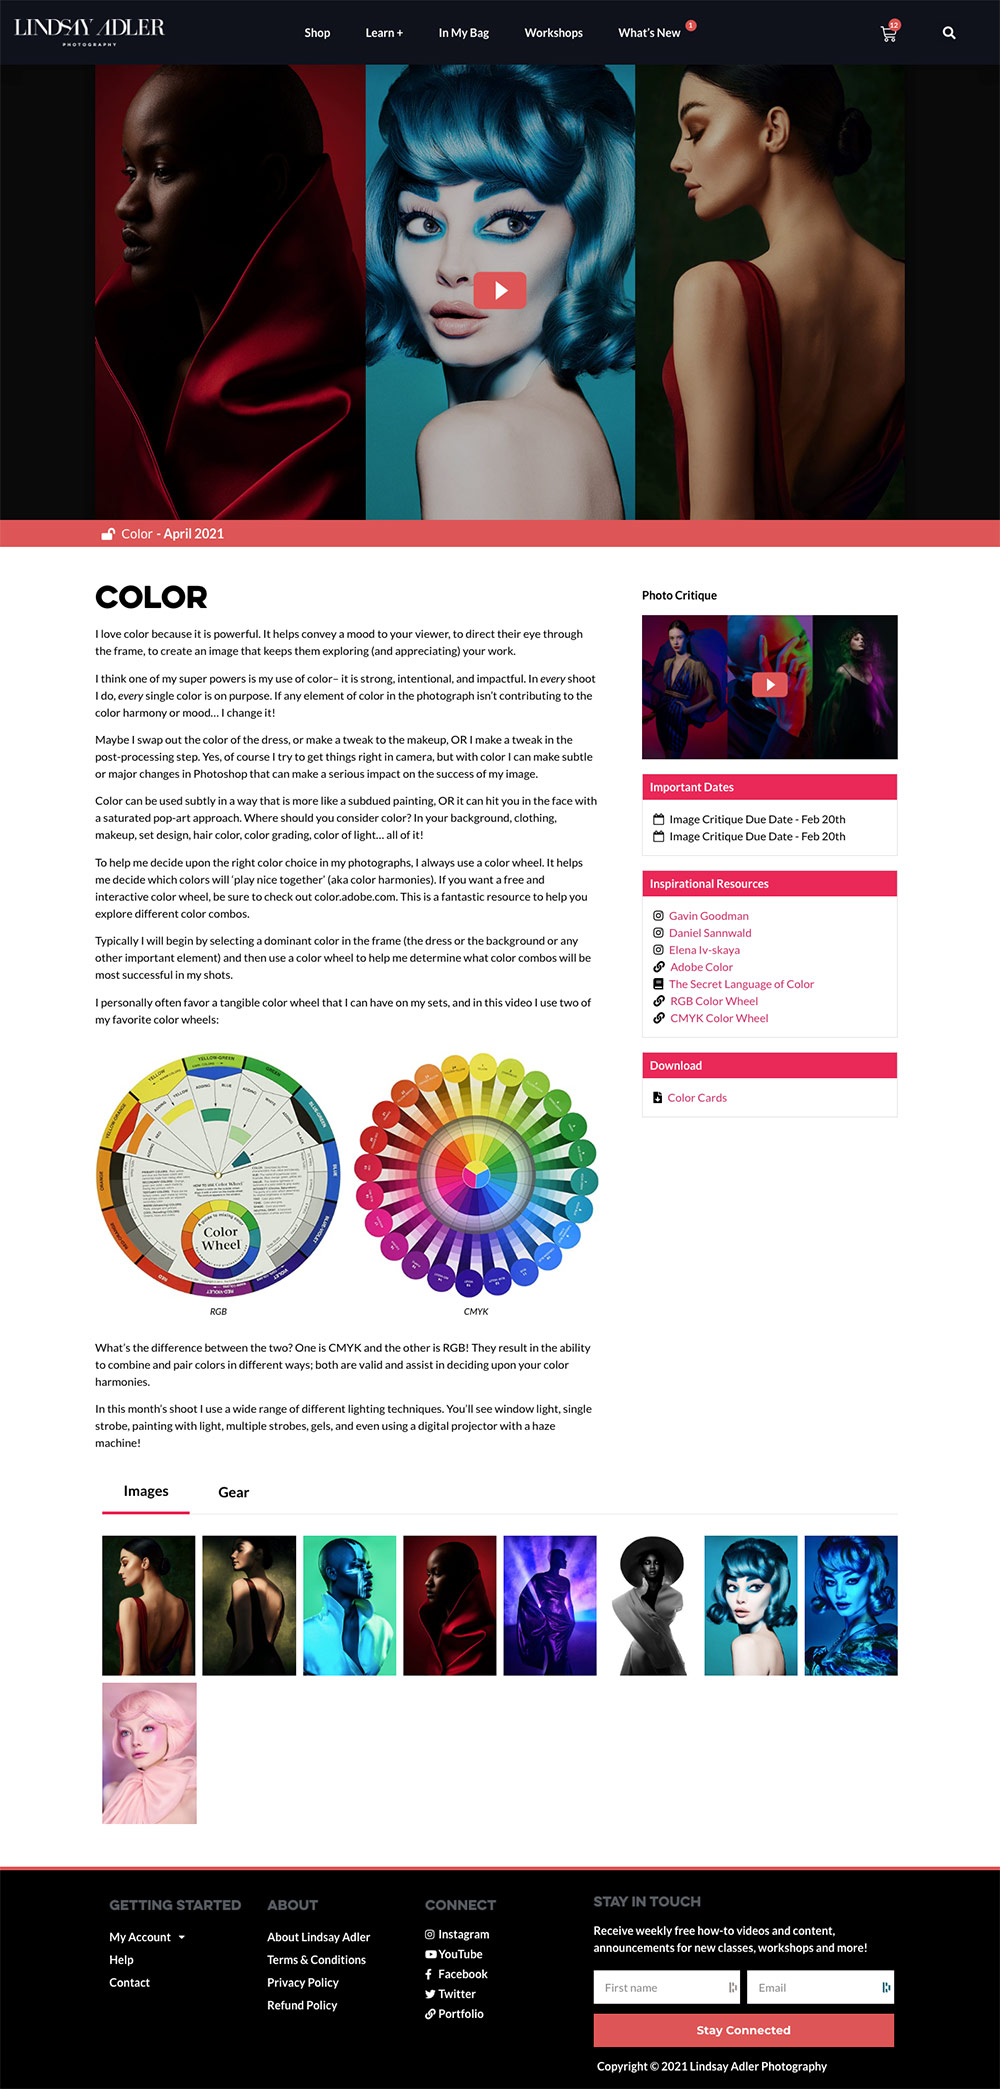 Learn Plus - Color Month - Lindsay Adler Photography